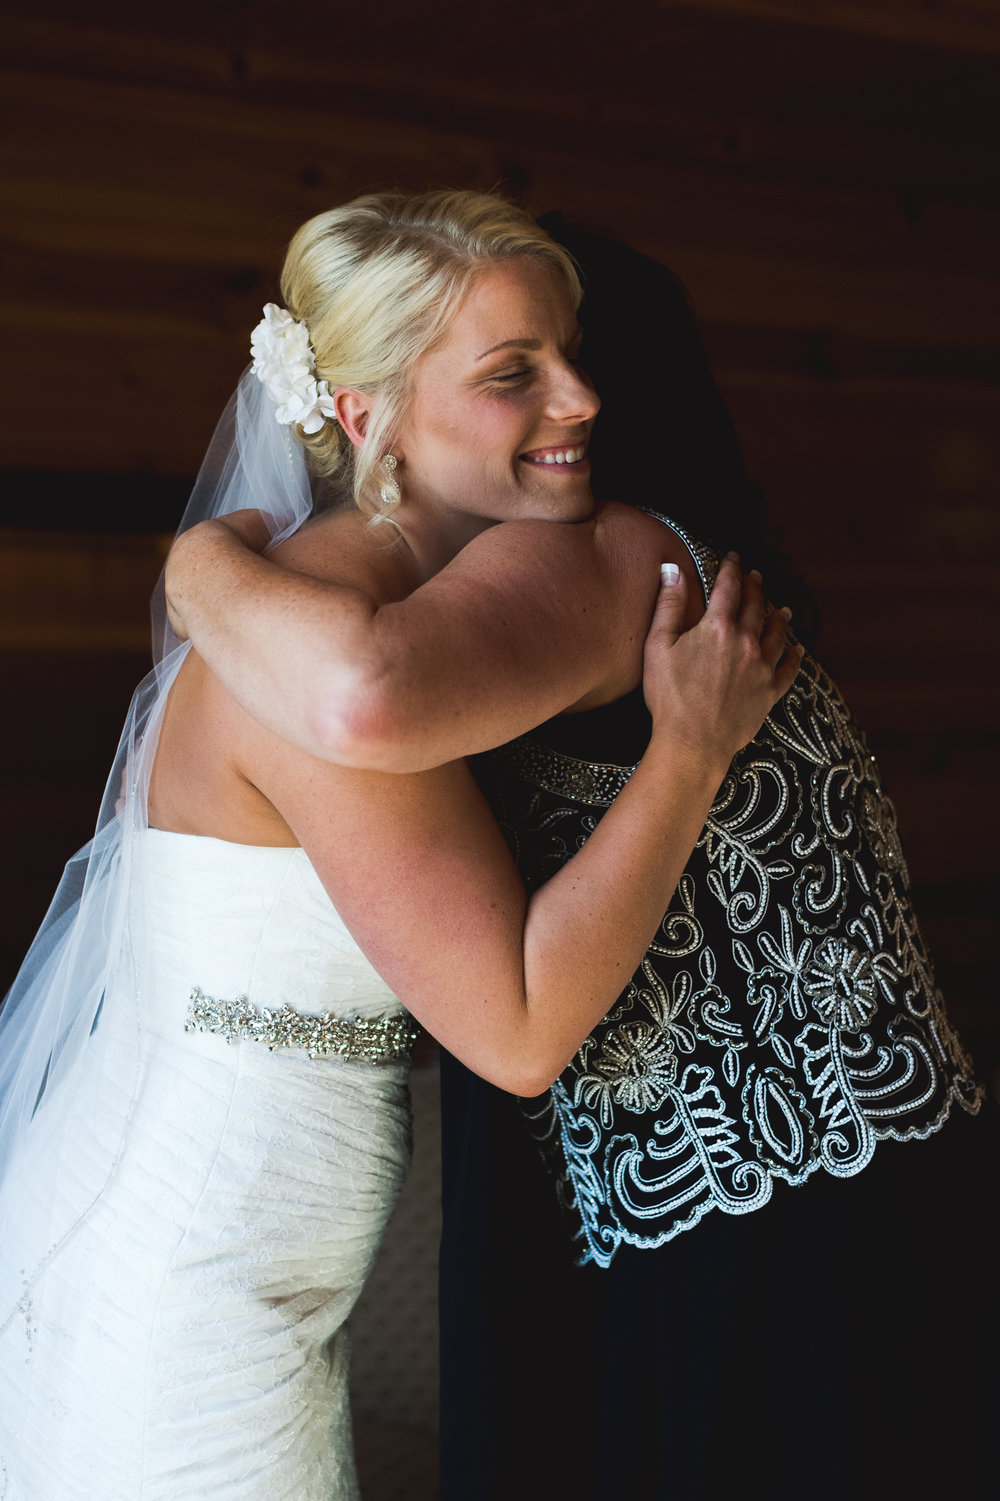 North Dakota Wedding Photographer | Chelsea Joy Photography